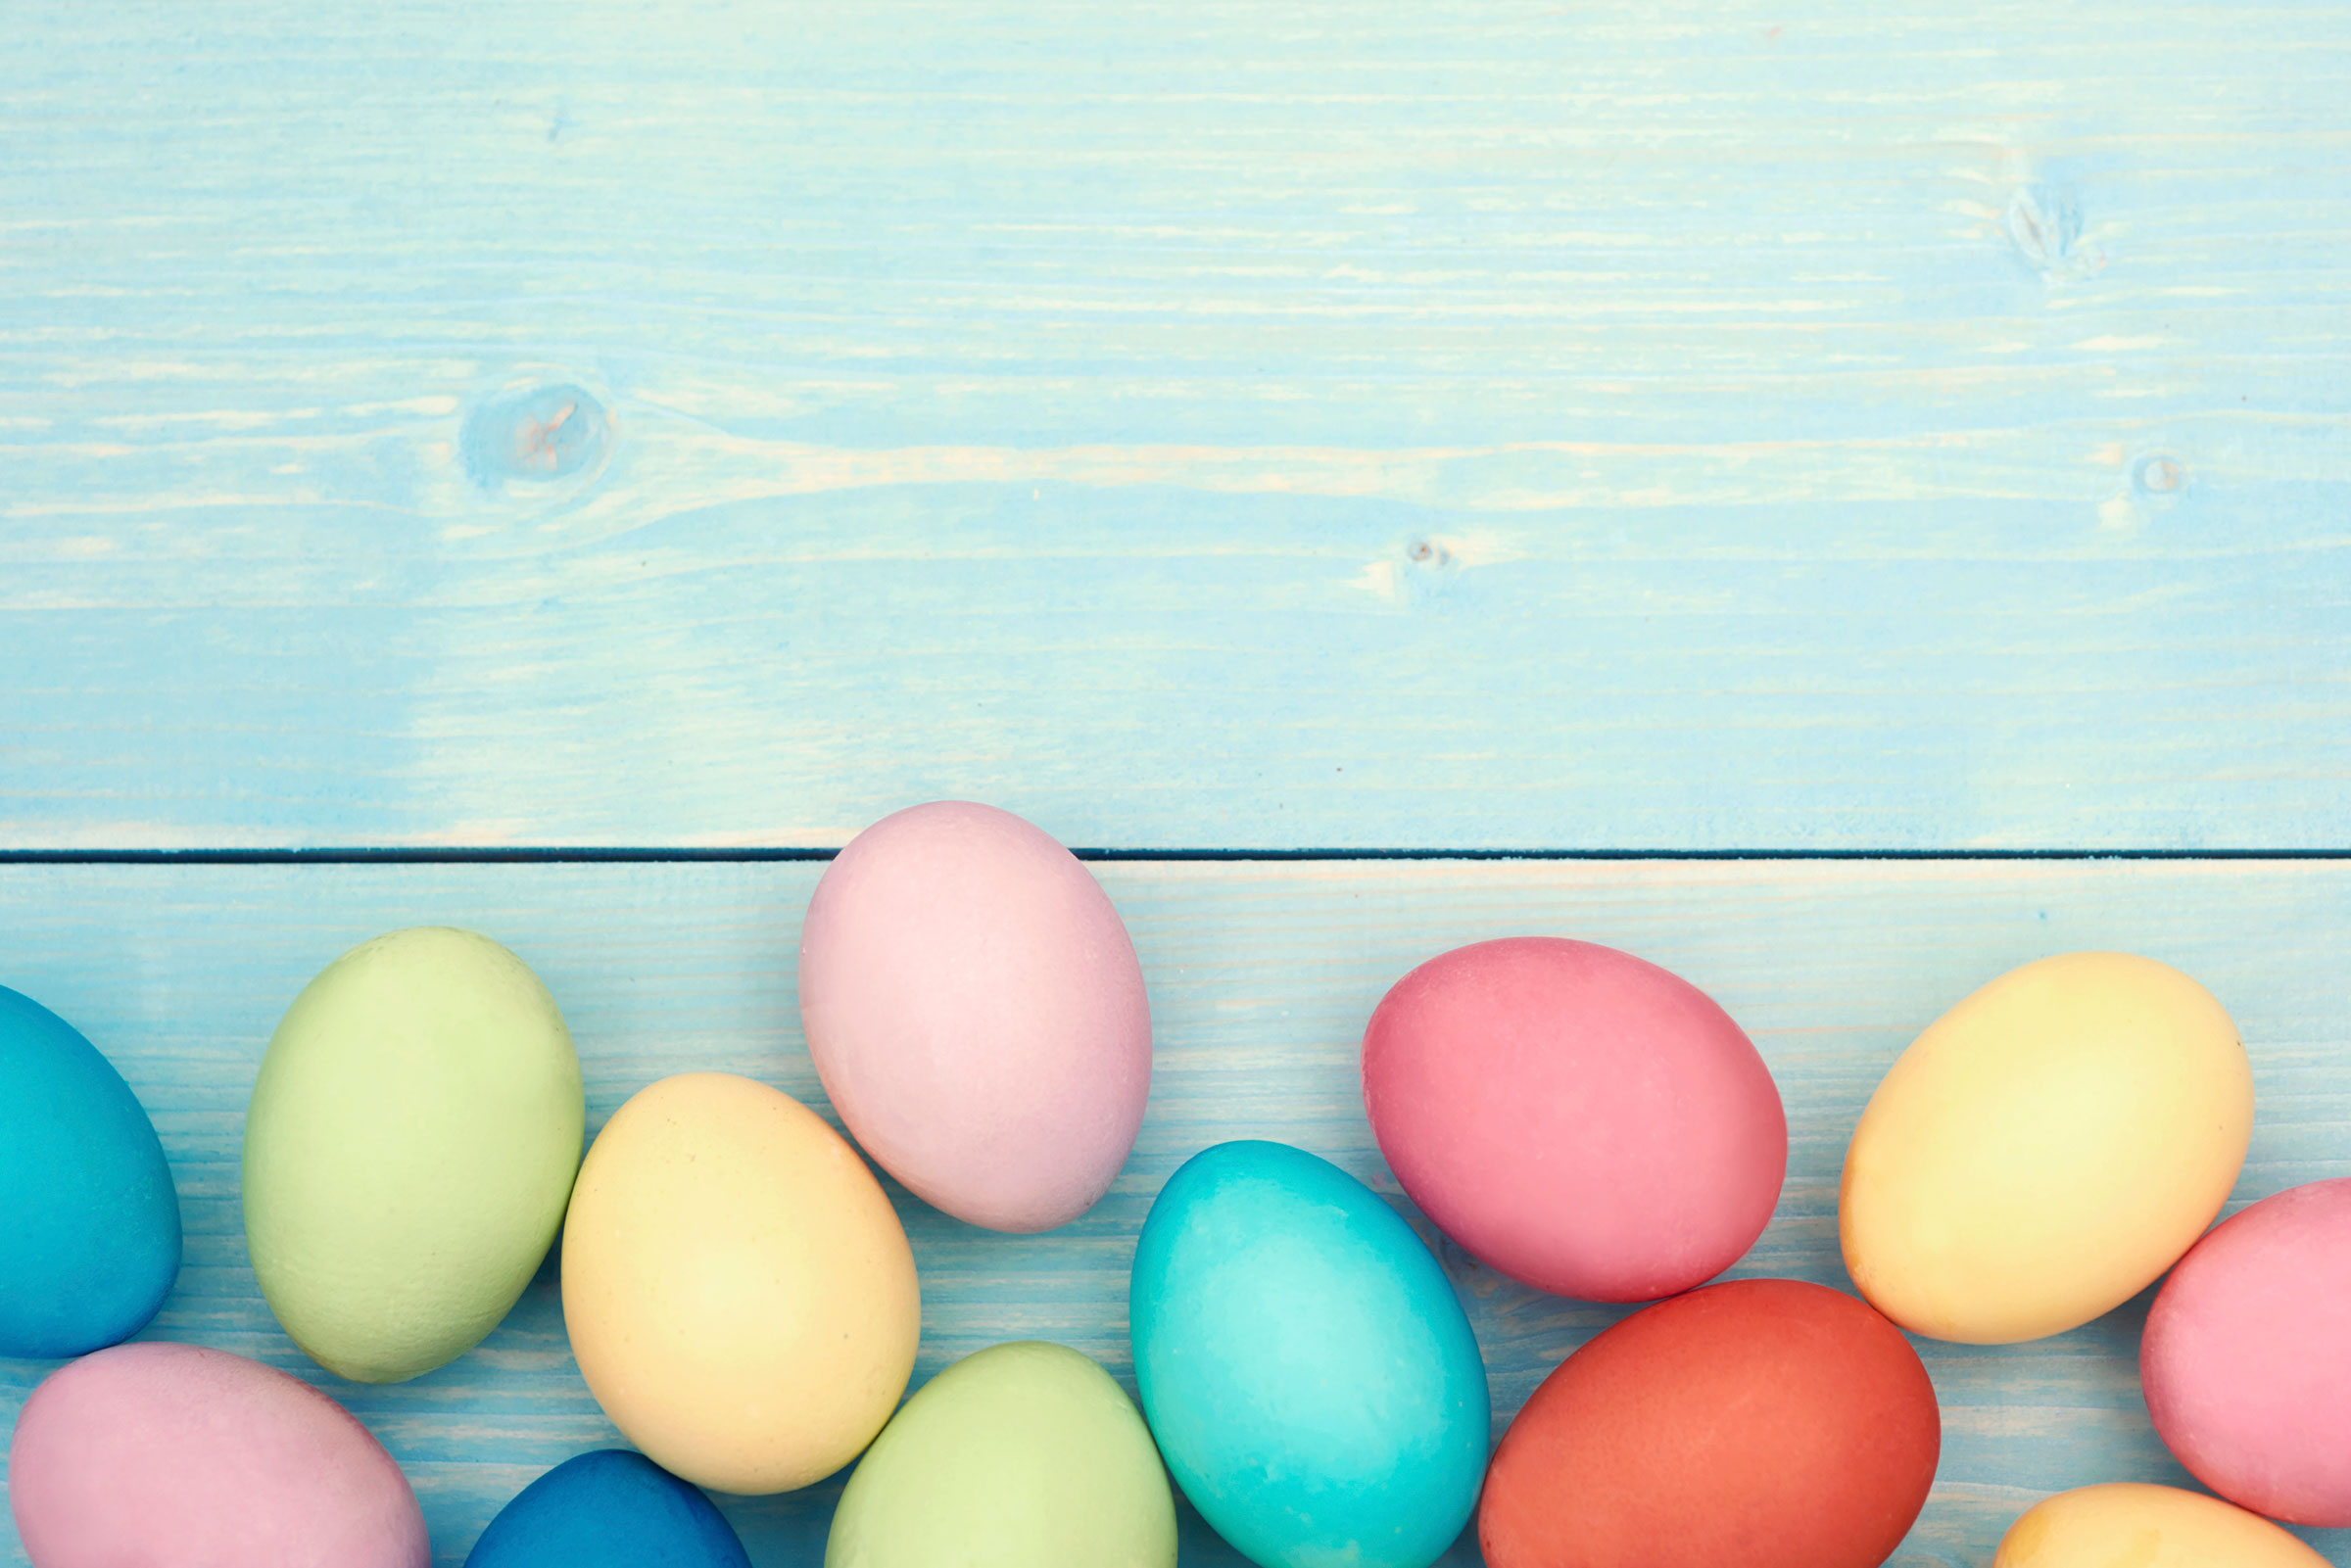 free stock photo of easter eggs